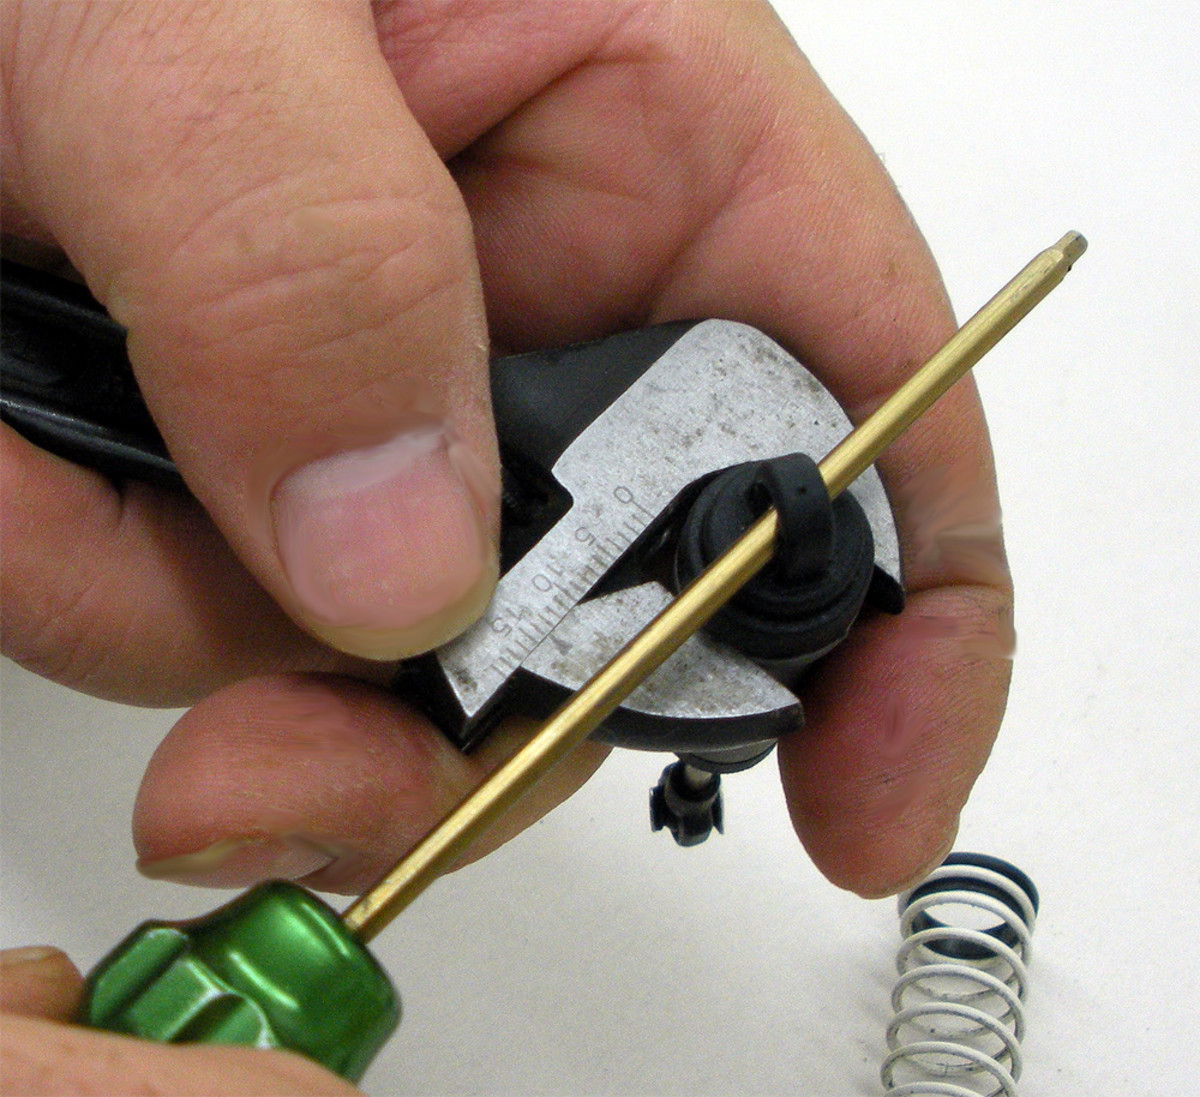 Using screwdriver to turn the cap. Note shock is held upright for this operation.